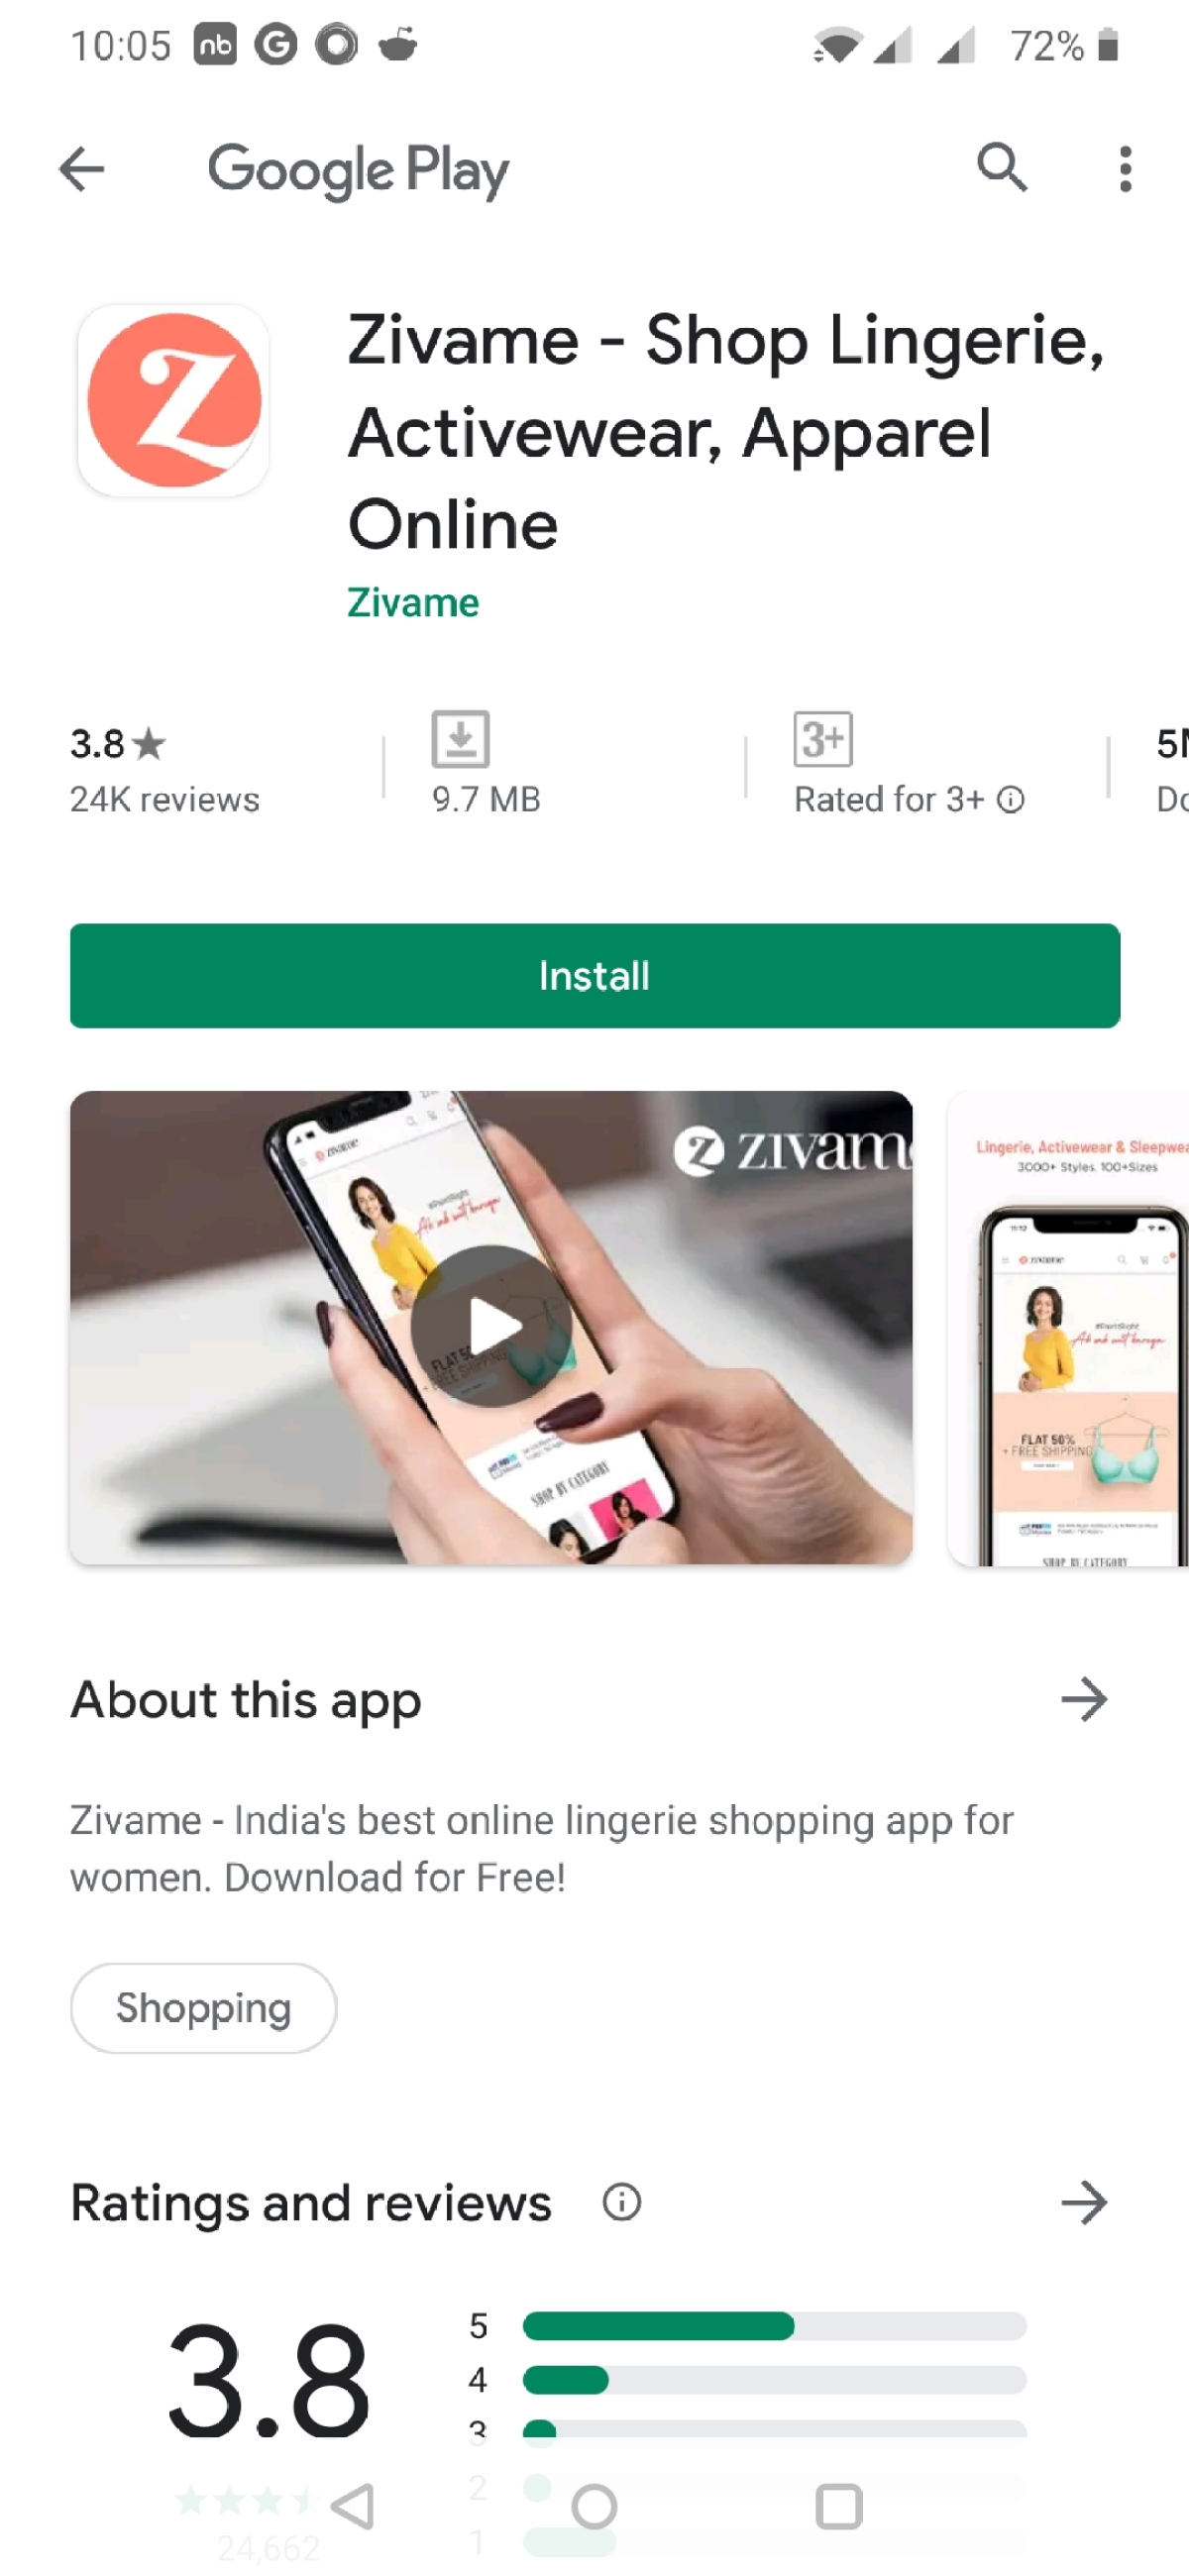 Using the shop now option takes a user to the play store to download the app